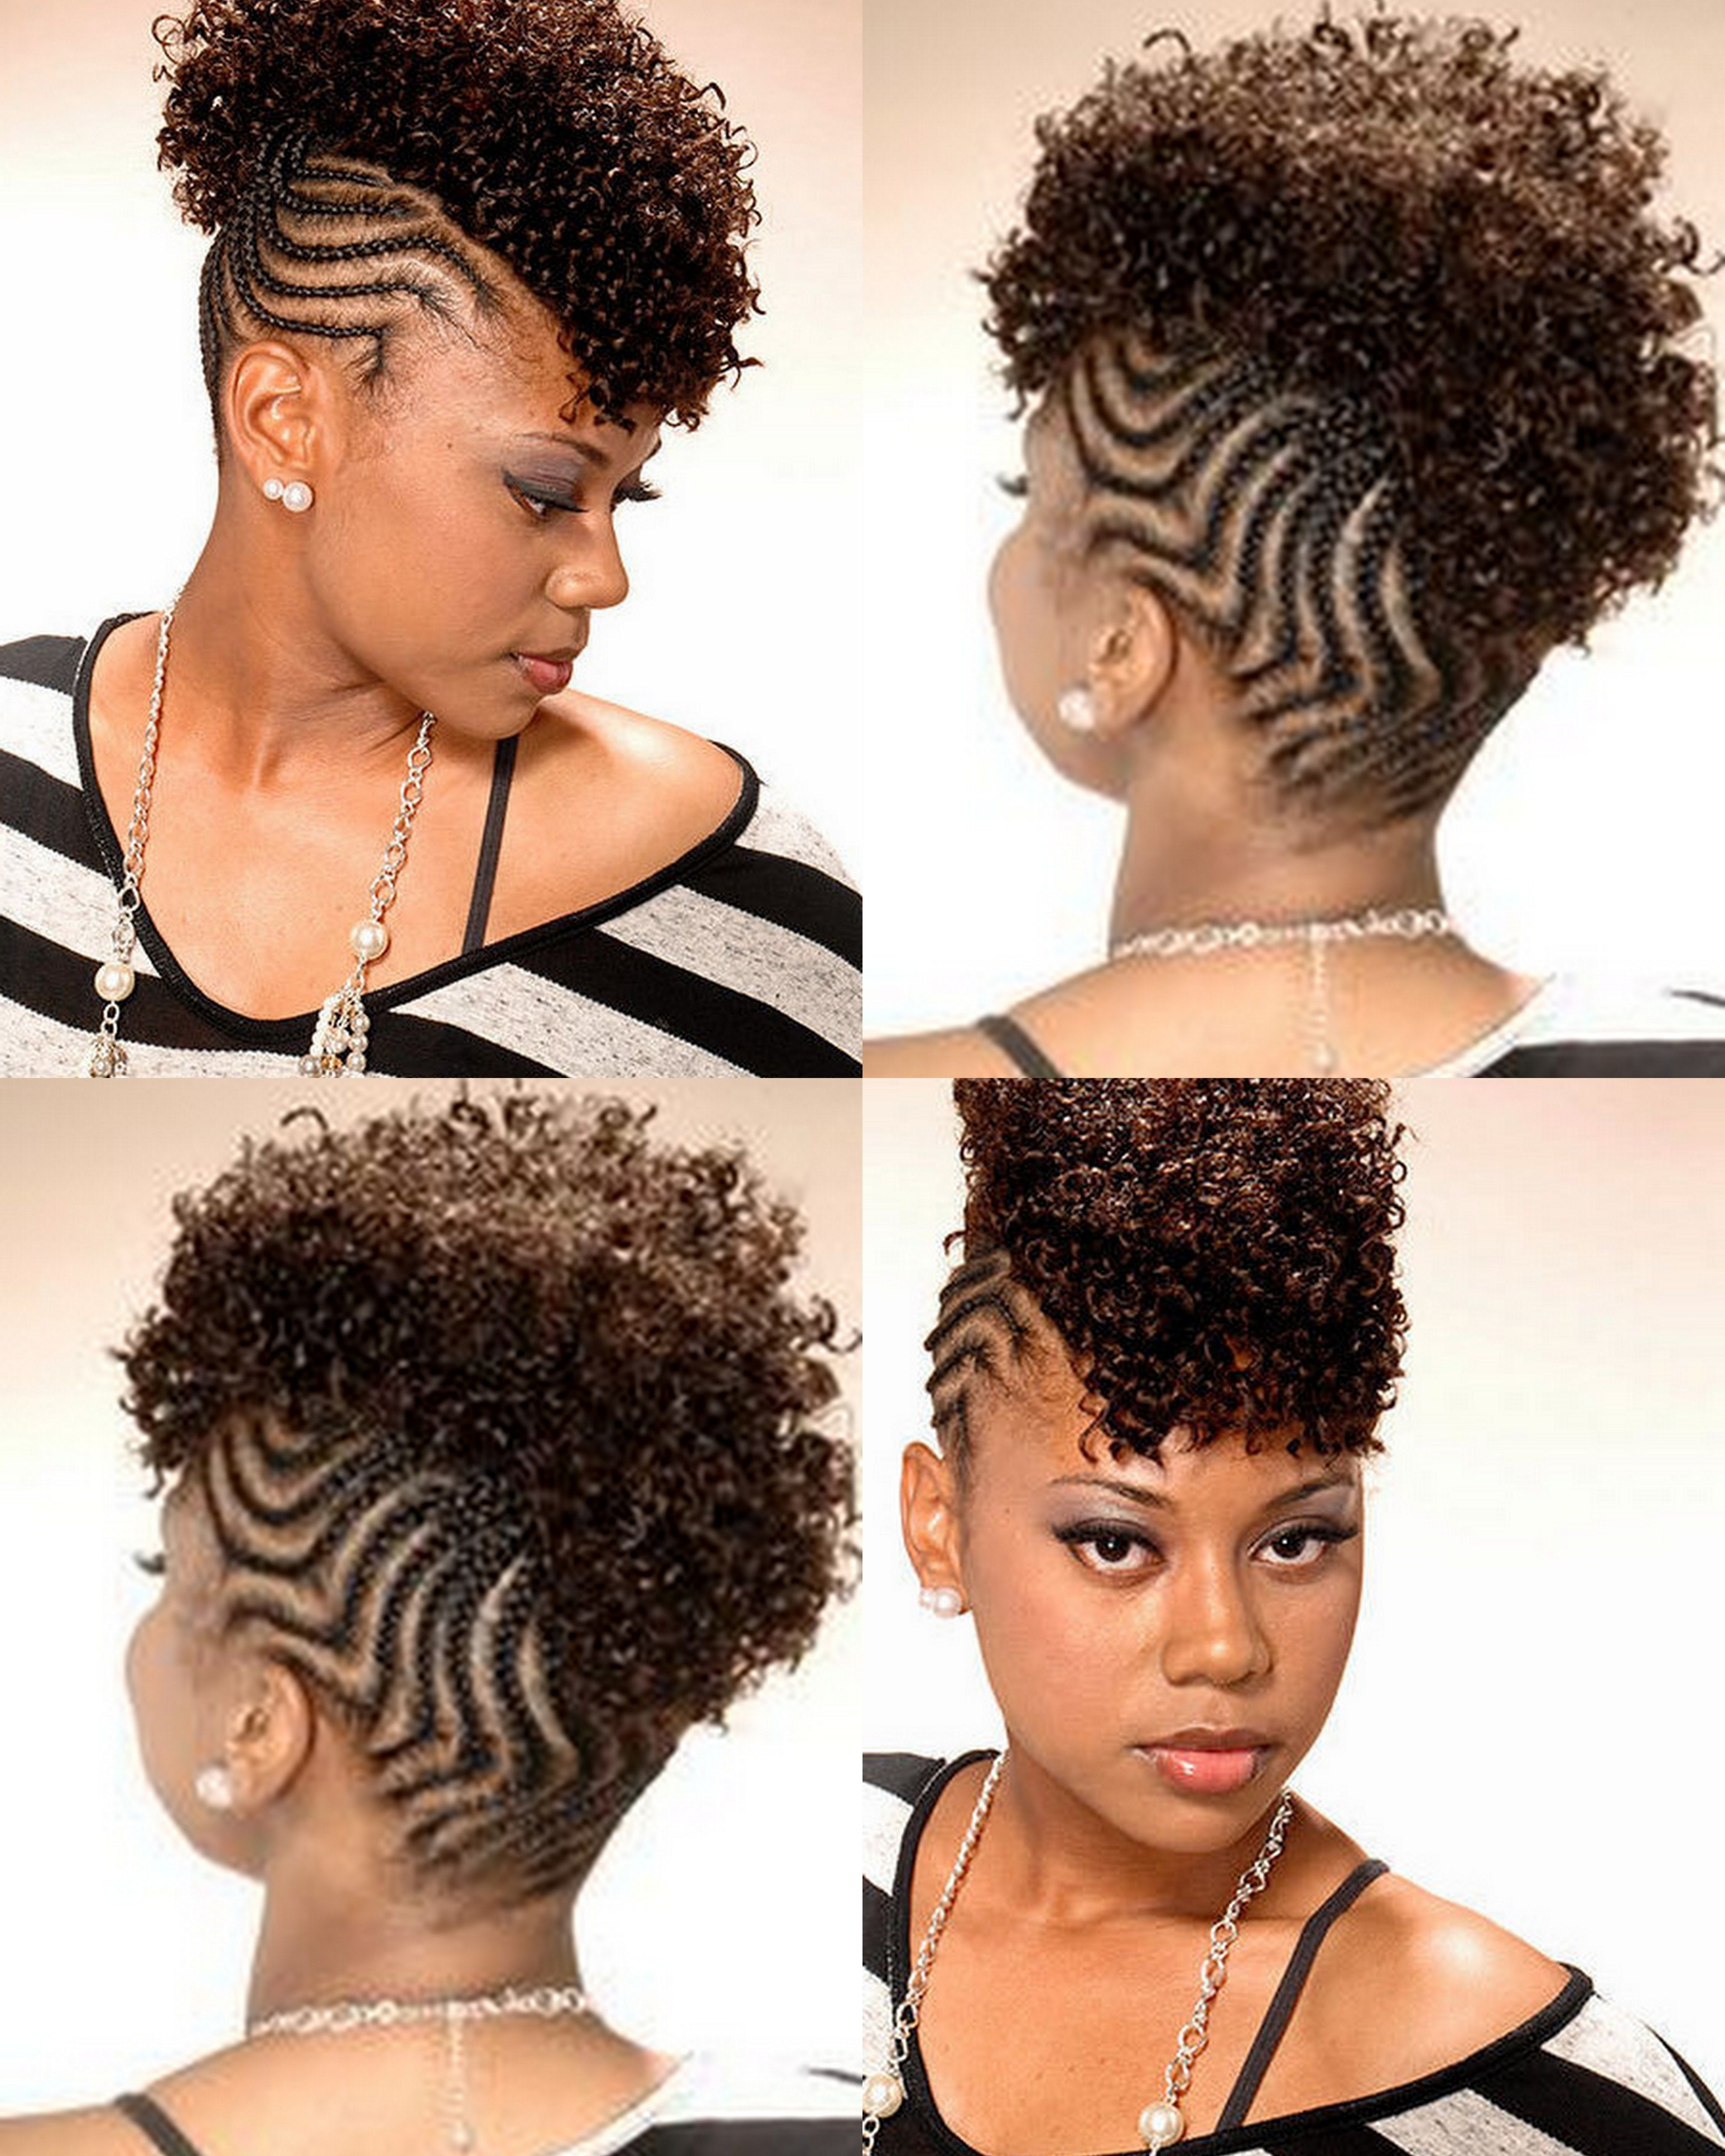 Best Of Mohawk Hairstyles With Braids Weave Alwaysdc Pertaining To Well Liked Braided Ponytail Mohawk Hairstyles (View 8 of 20)